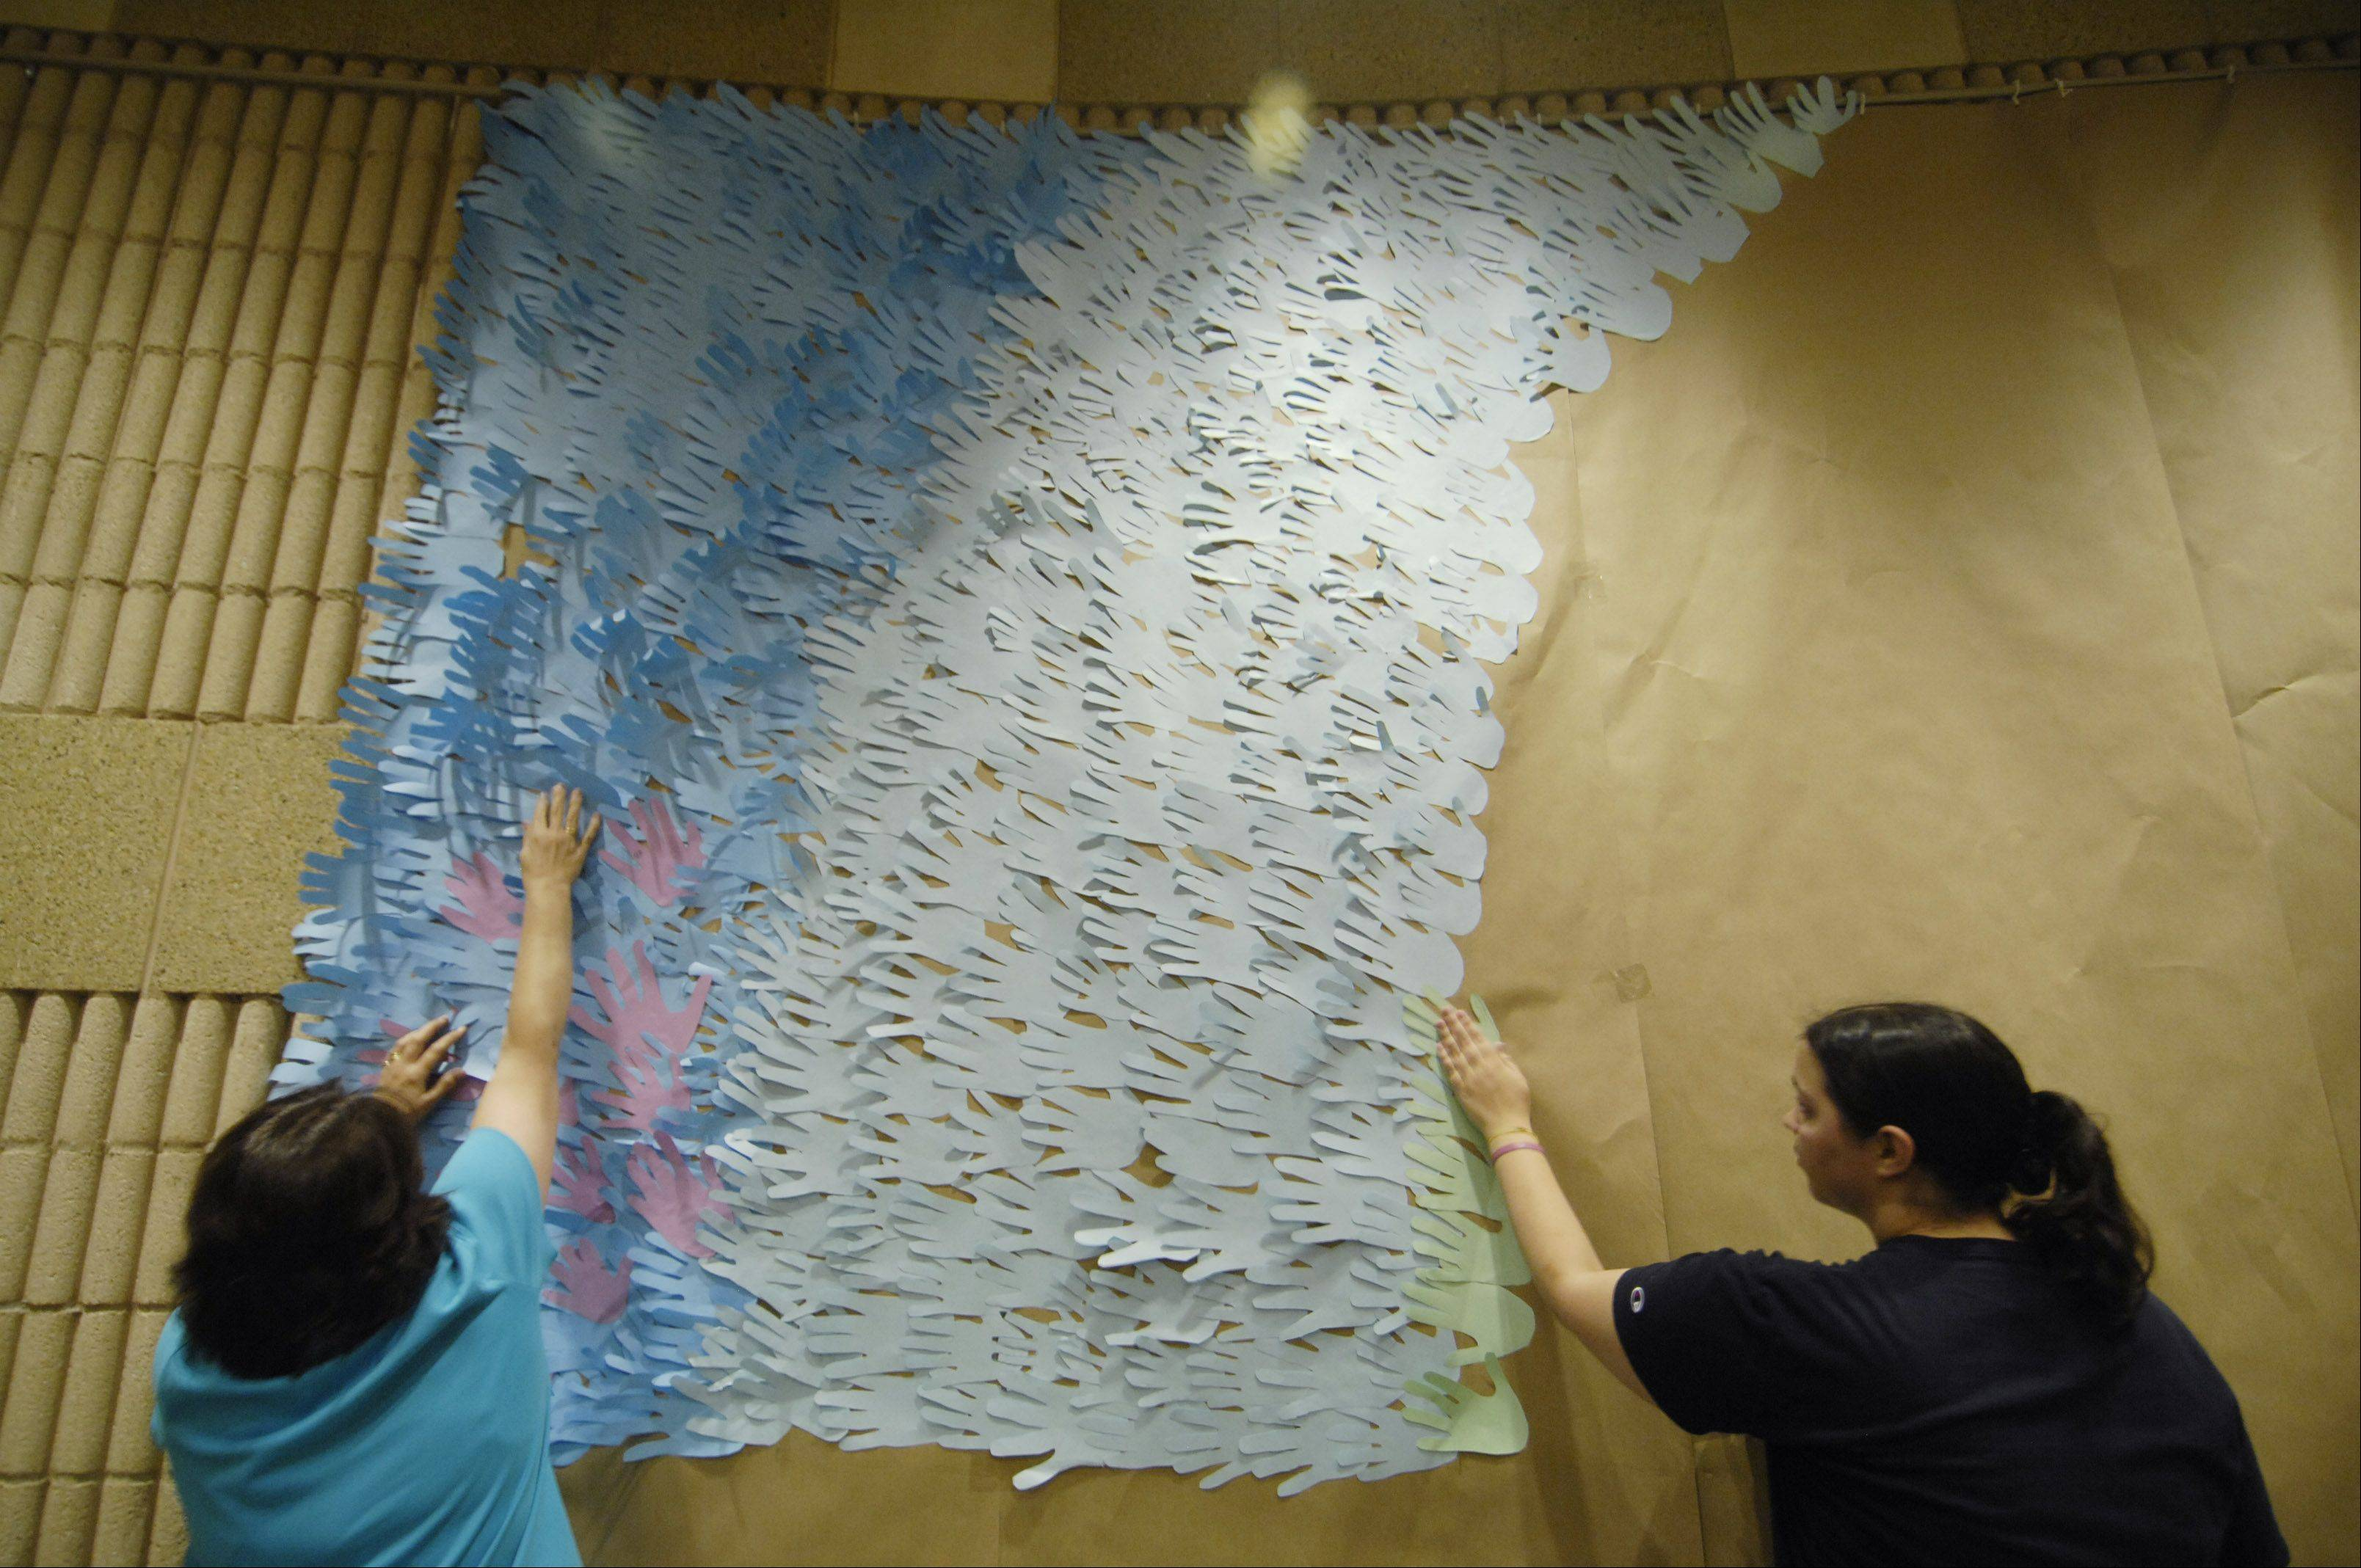 Volunteers work on a mosaic made of parishioners traced hands for the 100th anniversary of St. Peter Church in Geneva.